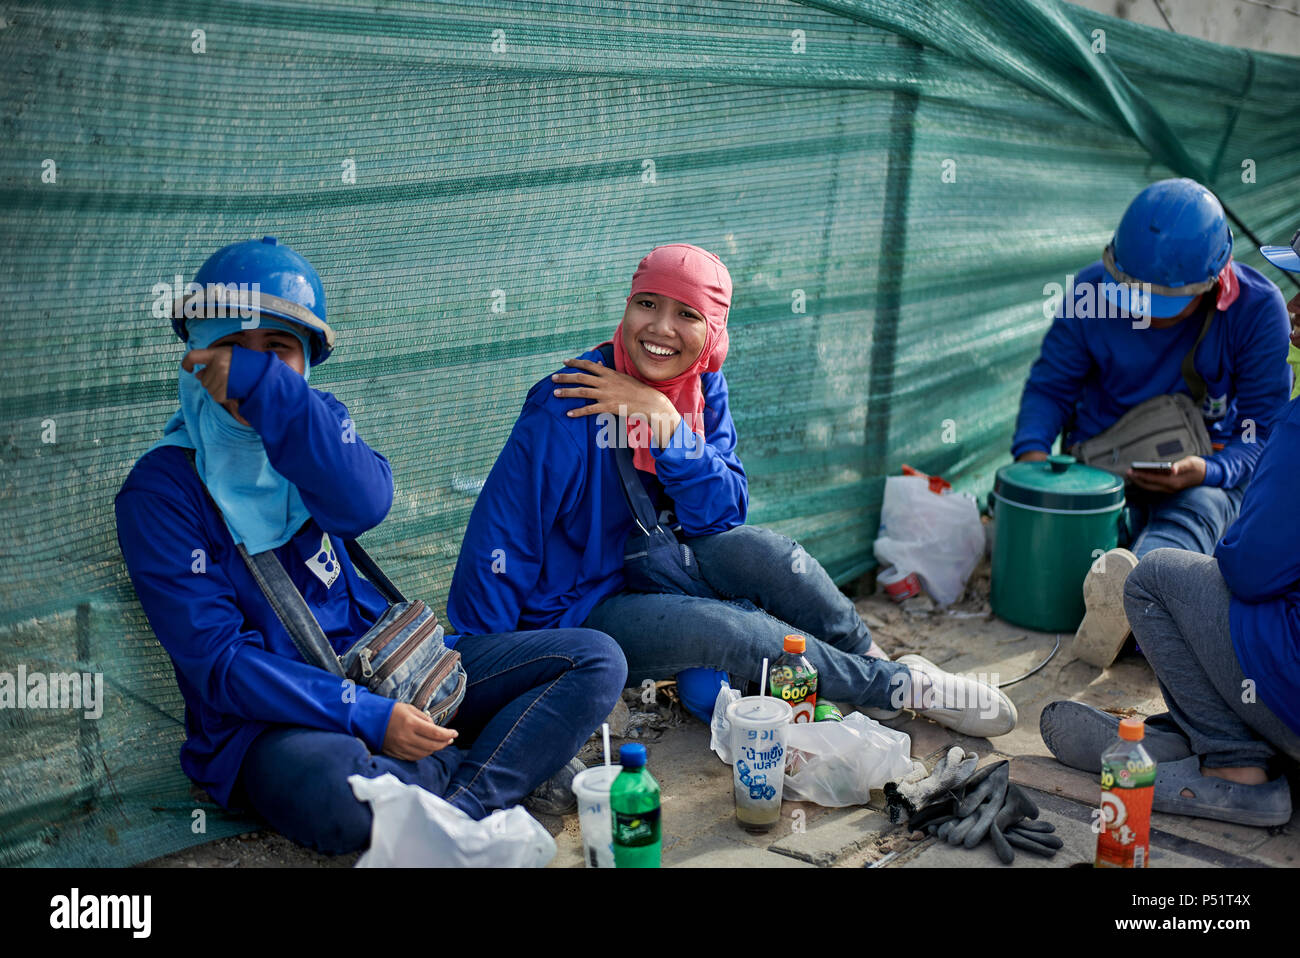 woman-building-site-thailand-female-cons